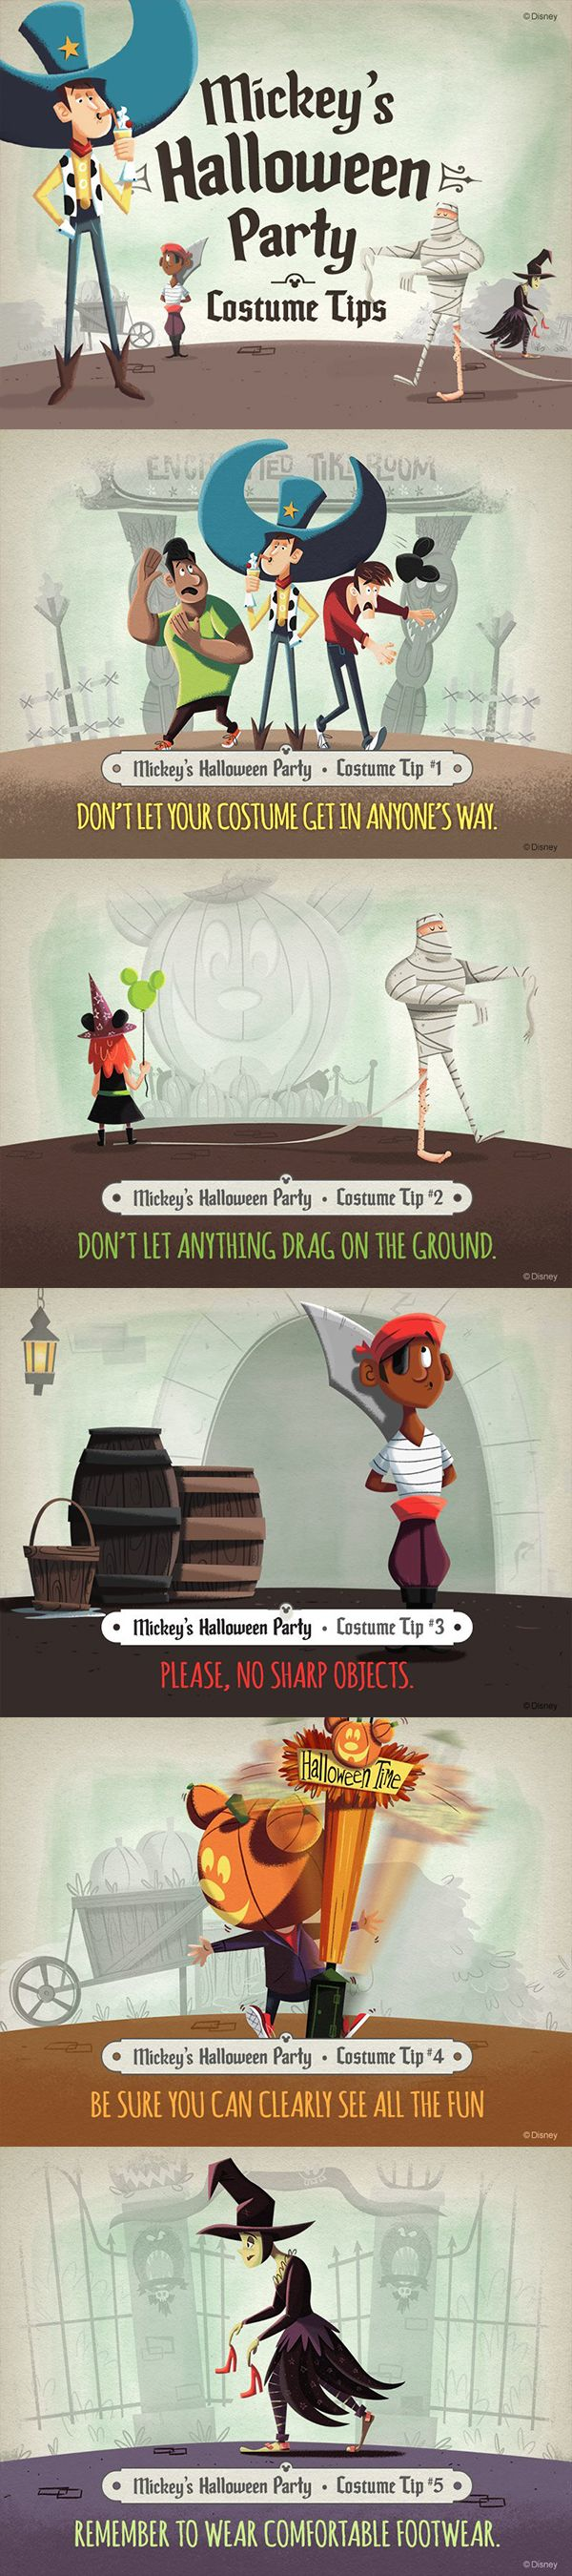 39 best Holiday - Halloween - Infographic images on Pinterest